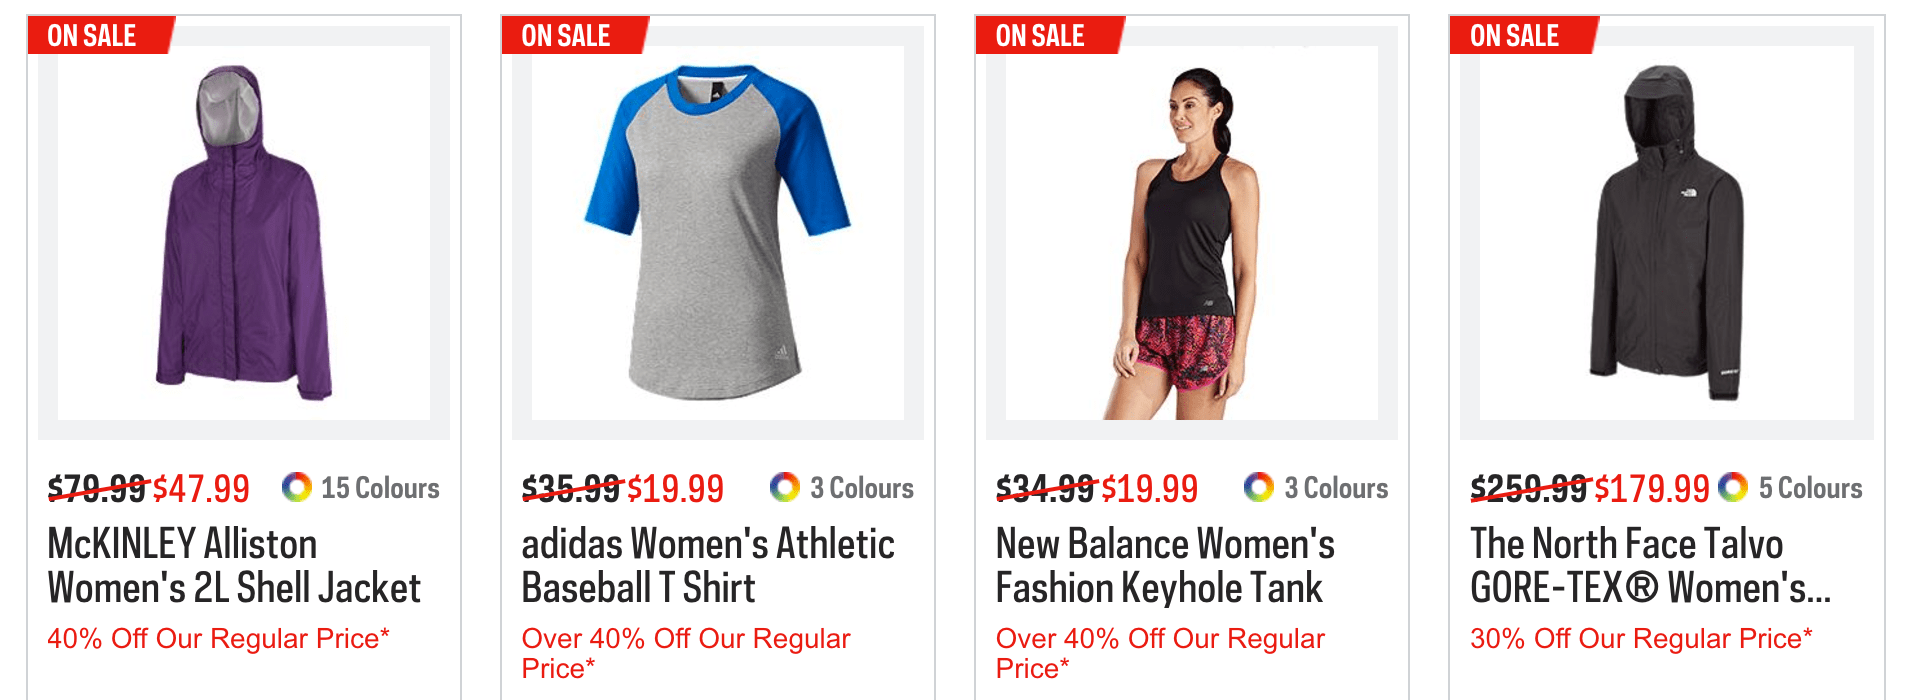 3e5652b80750e Through Thursday, take 25% off regular-priced items or 10% off sale items  with the coupon found here:.Sport Chek Special Offers: Get discounts on  select ...